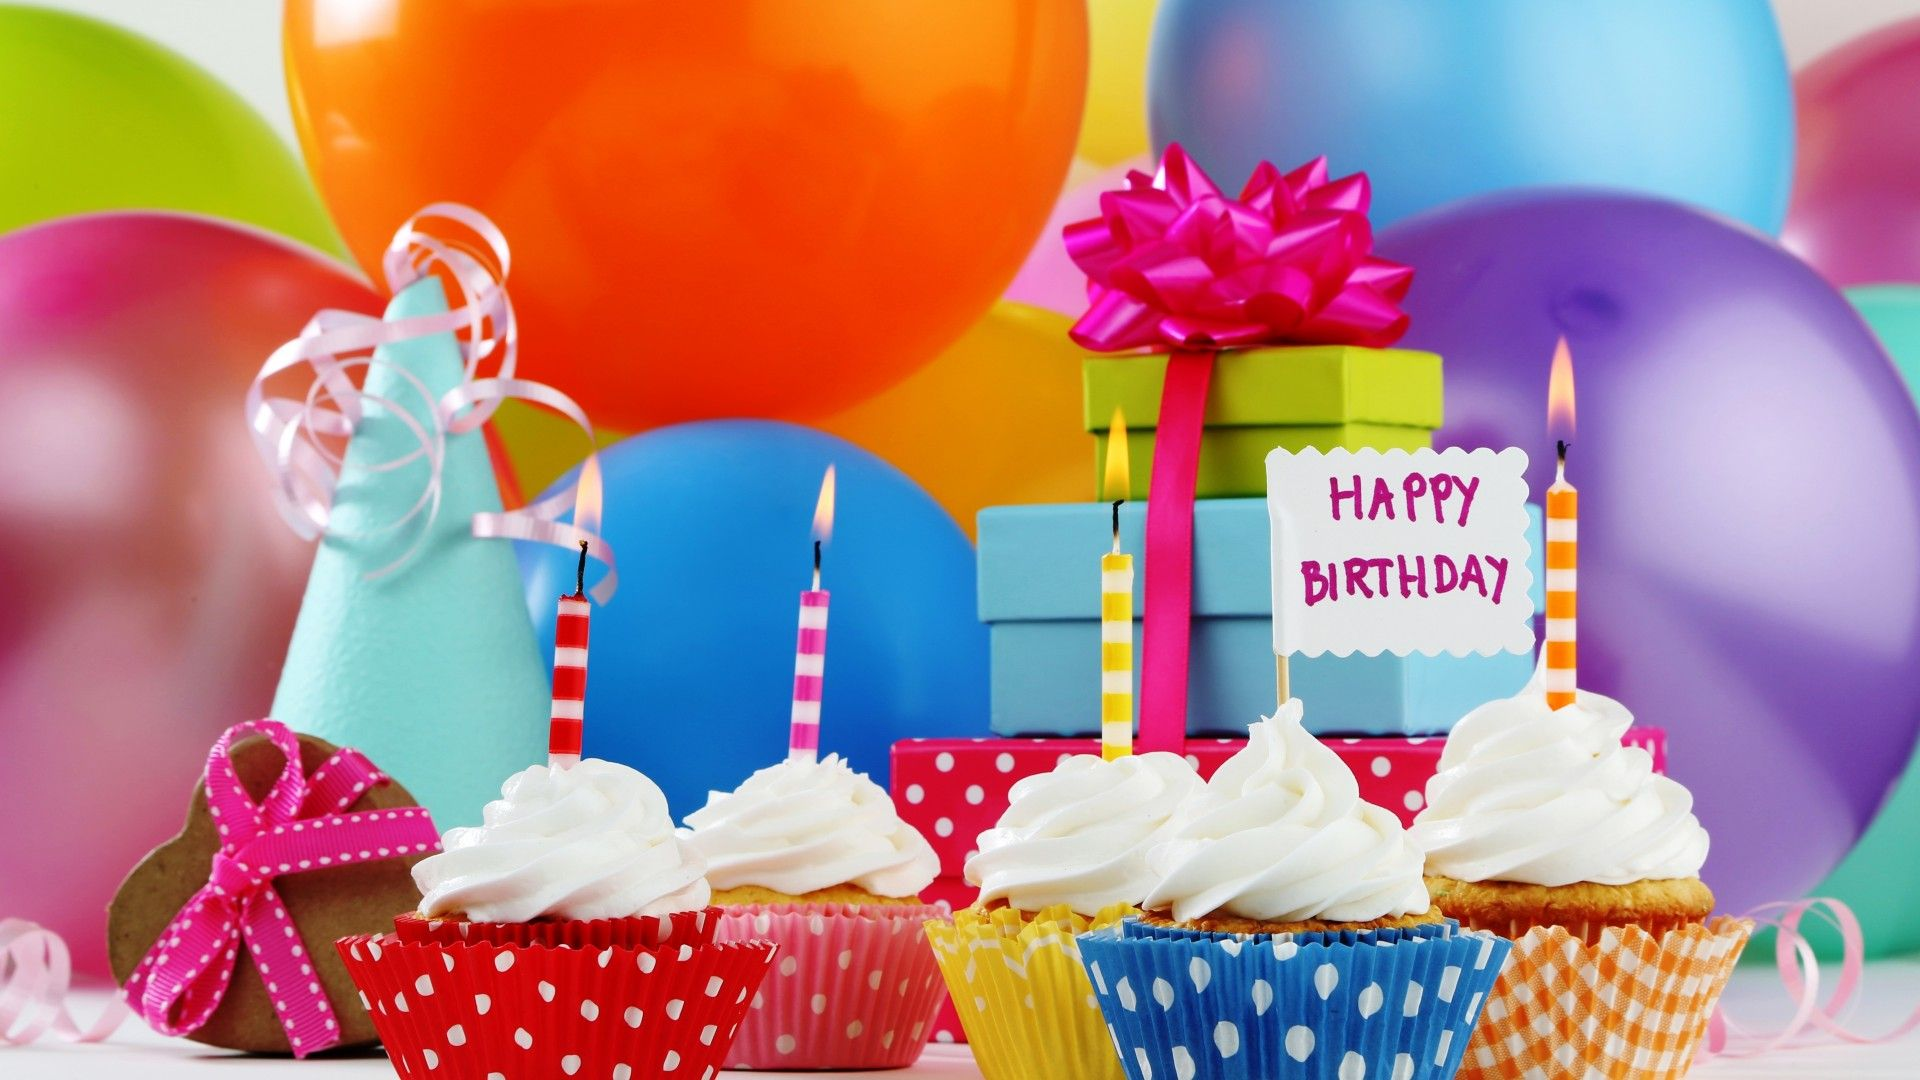 Happy Birthday Wallpapers HD Free Download wallpaper